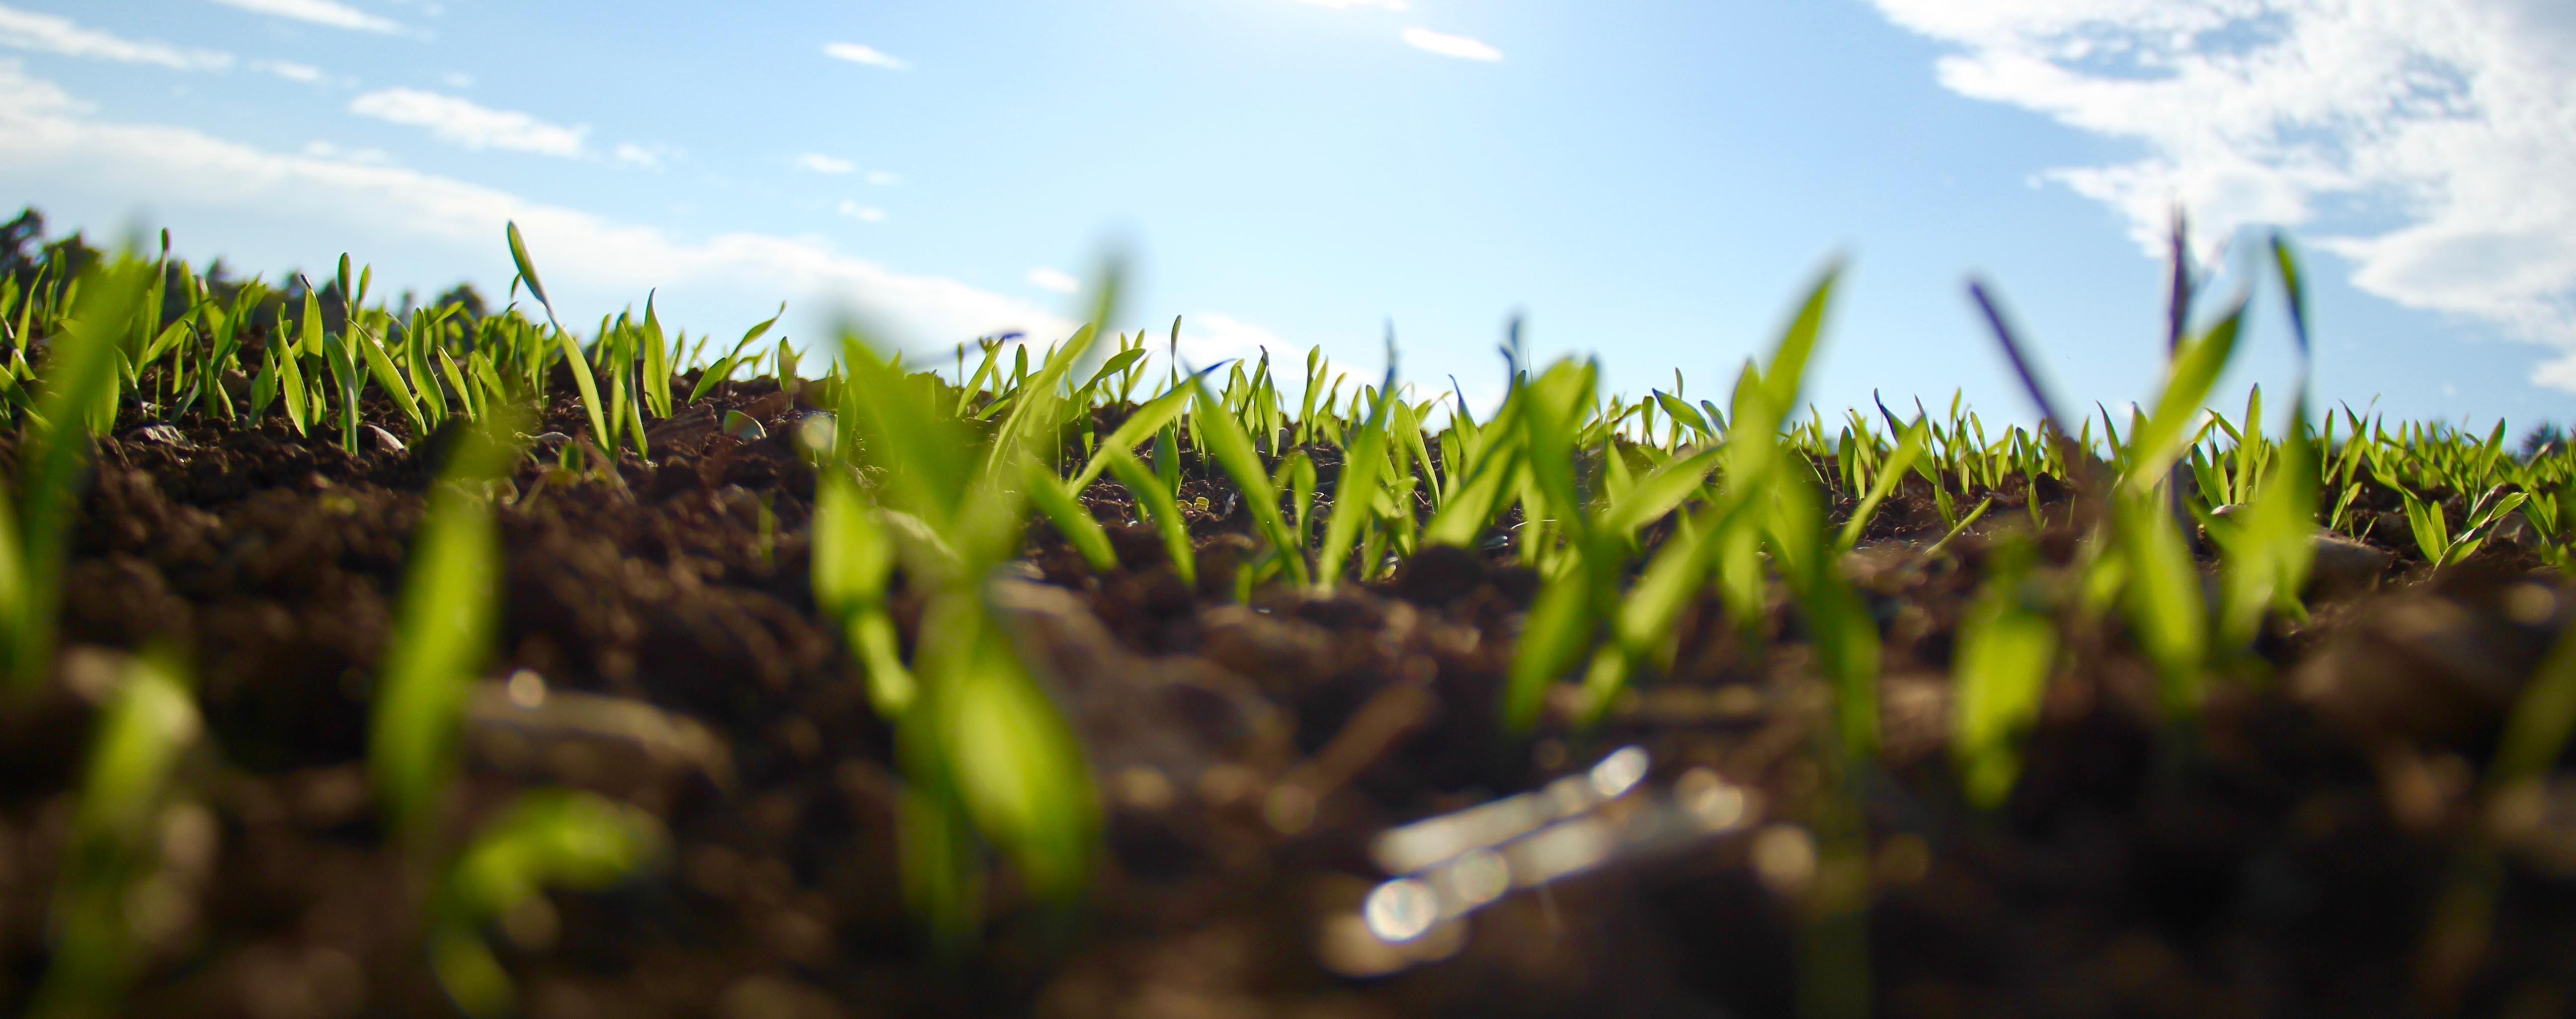 carbon Footprint - new shots of grass growing